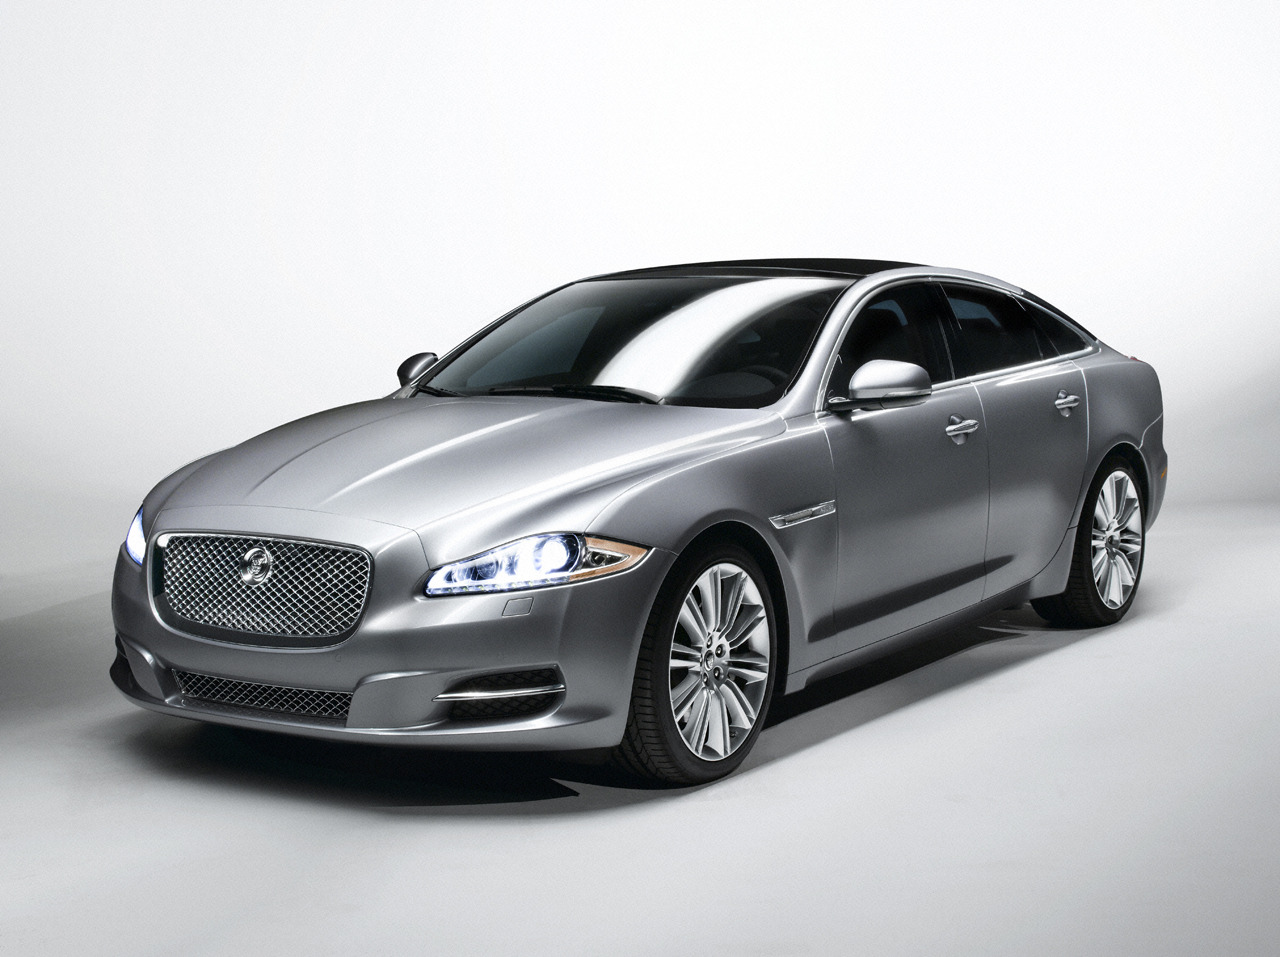 2013 Jaguar XJ Price